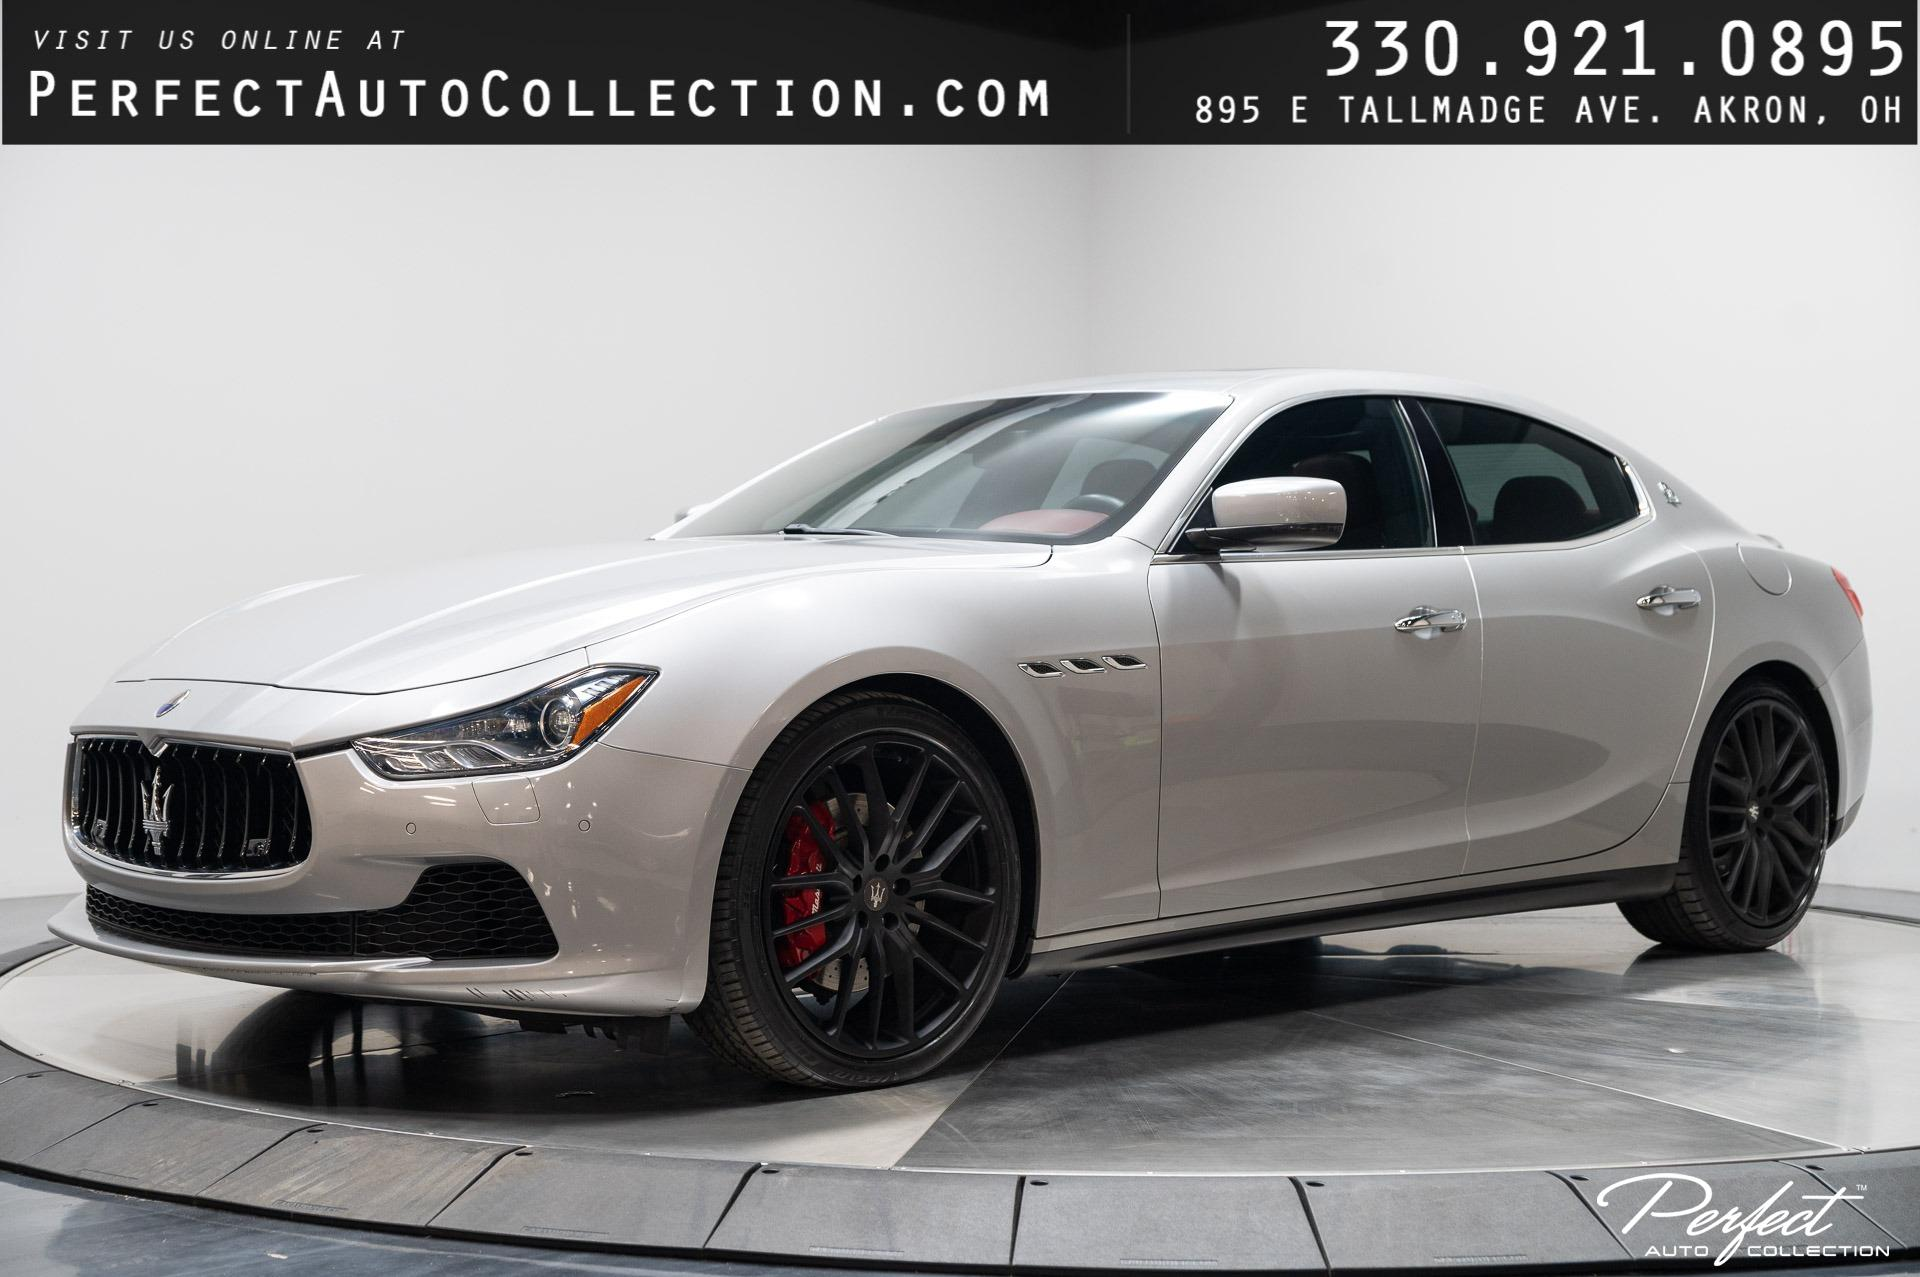 Used 2015 Maserati Ghibli S Q4 for sale $31,995 at Perfect Auto Collection in Akron OH 44310 1